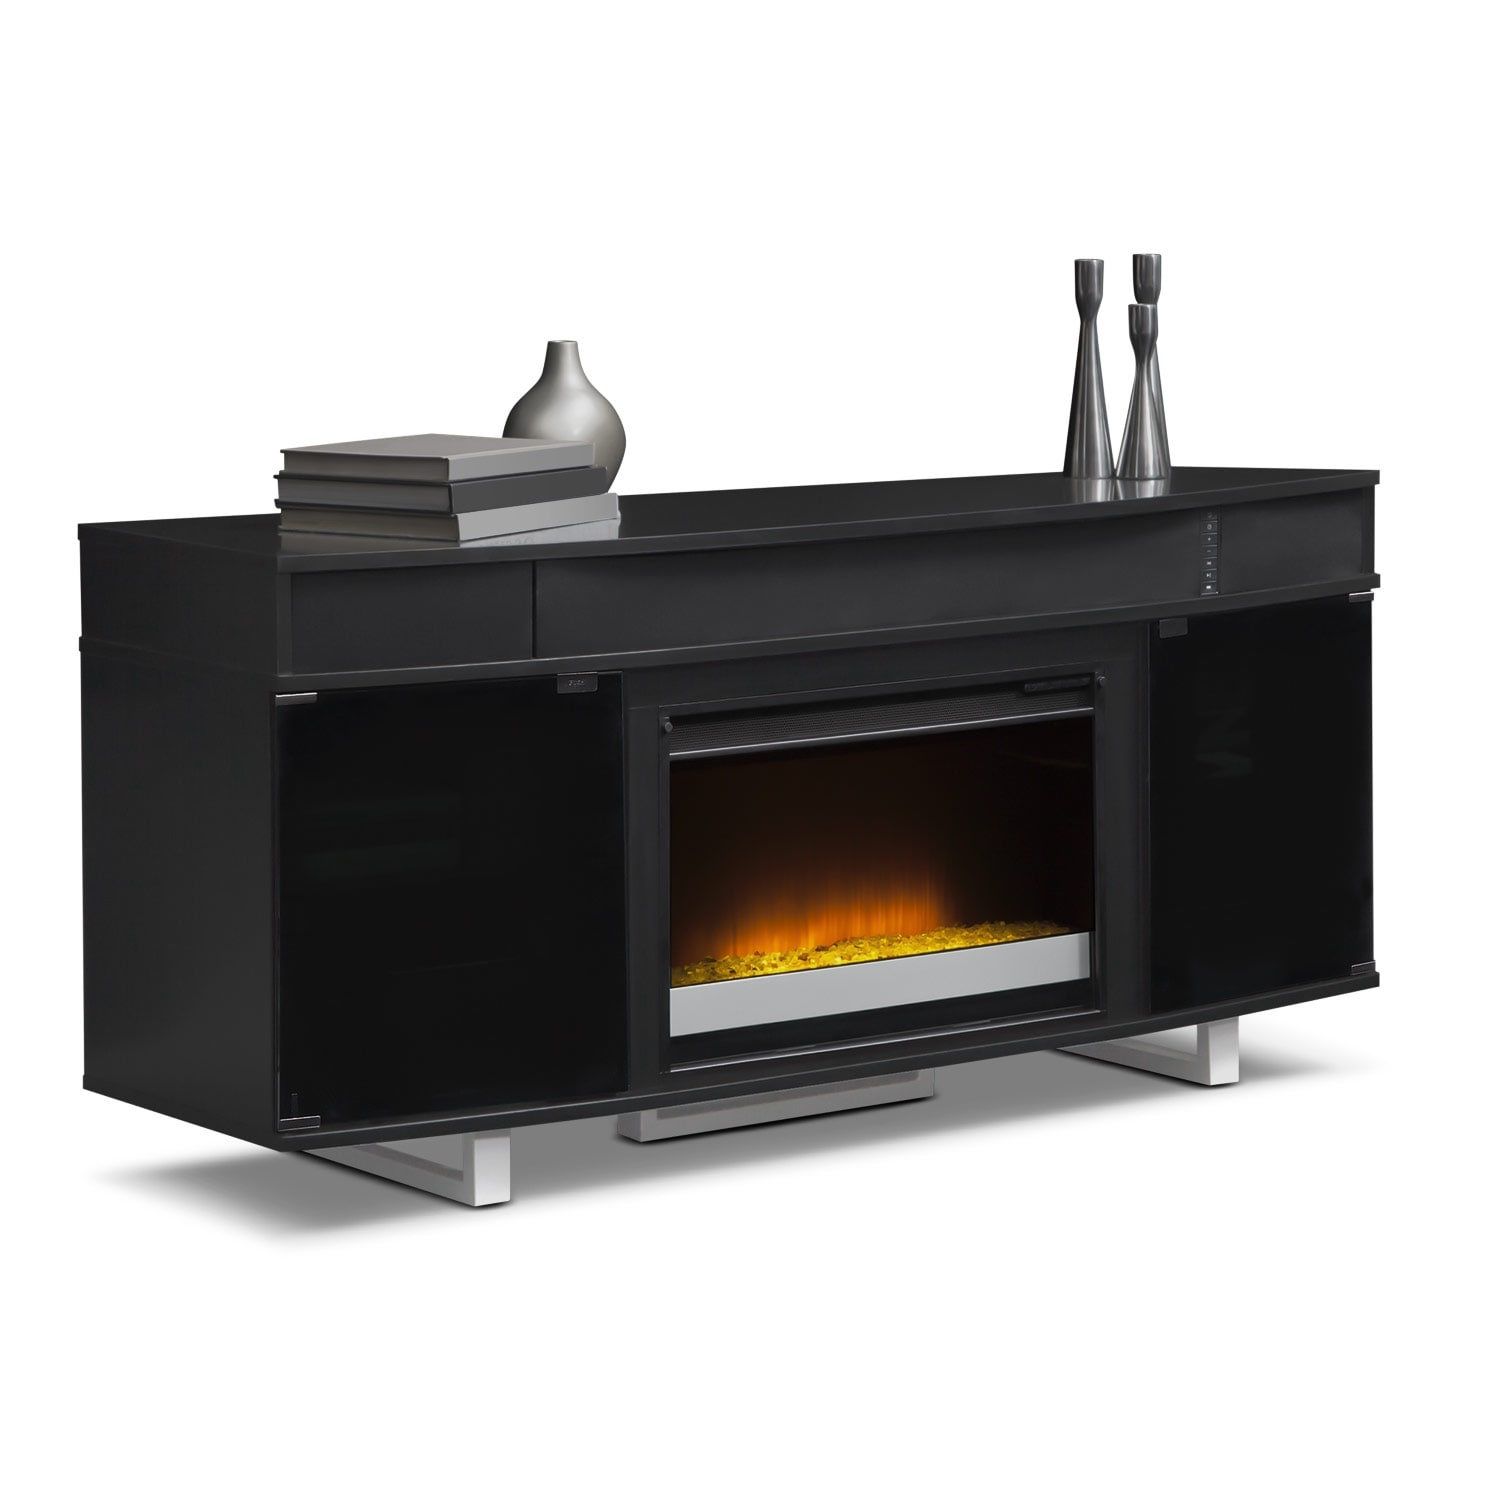 pacer 64 contemporary fireplace tv stand with sound bar black value city furniture and. Black Bedroom Furniture Sets. Home Design Ideas